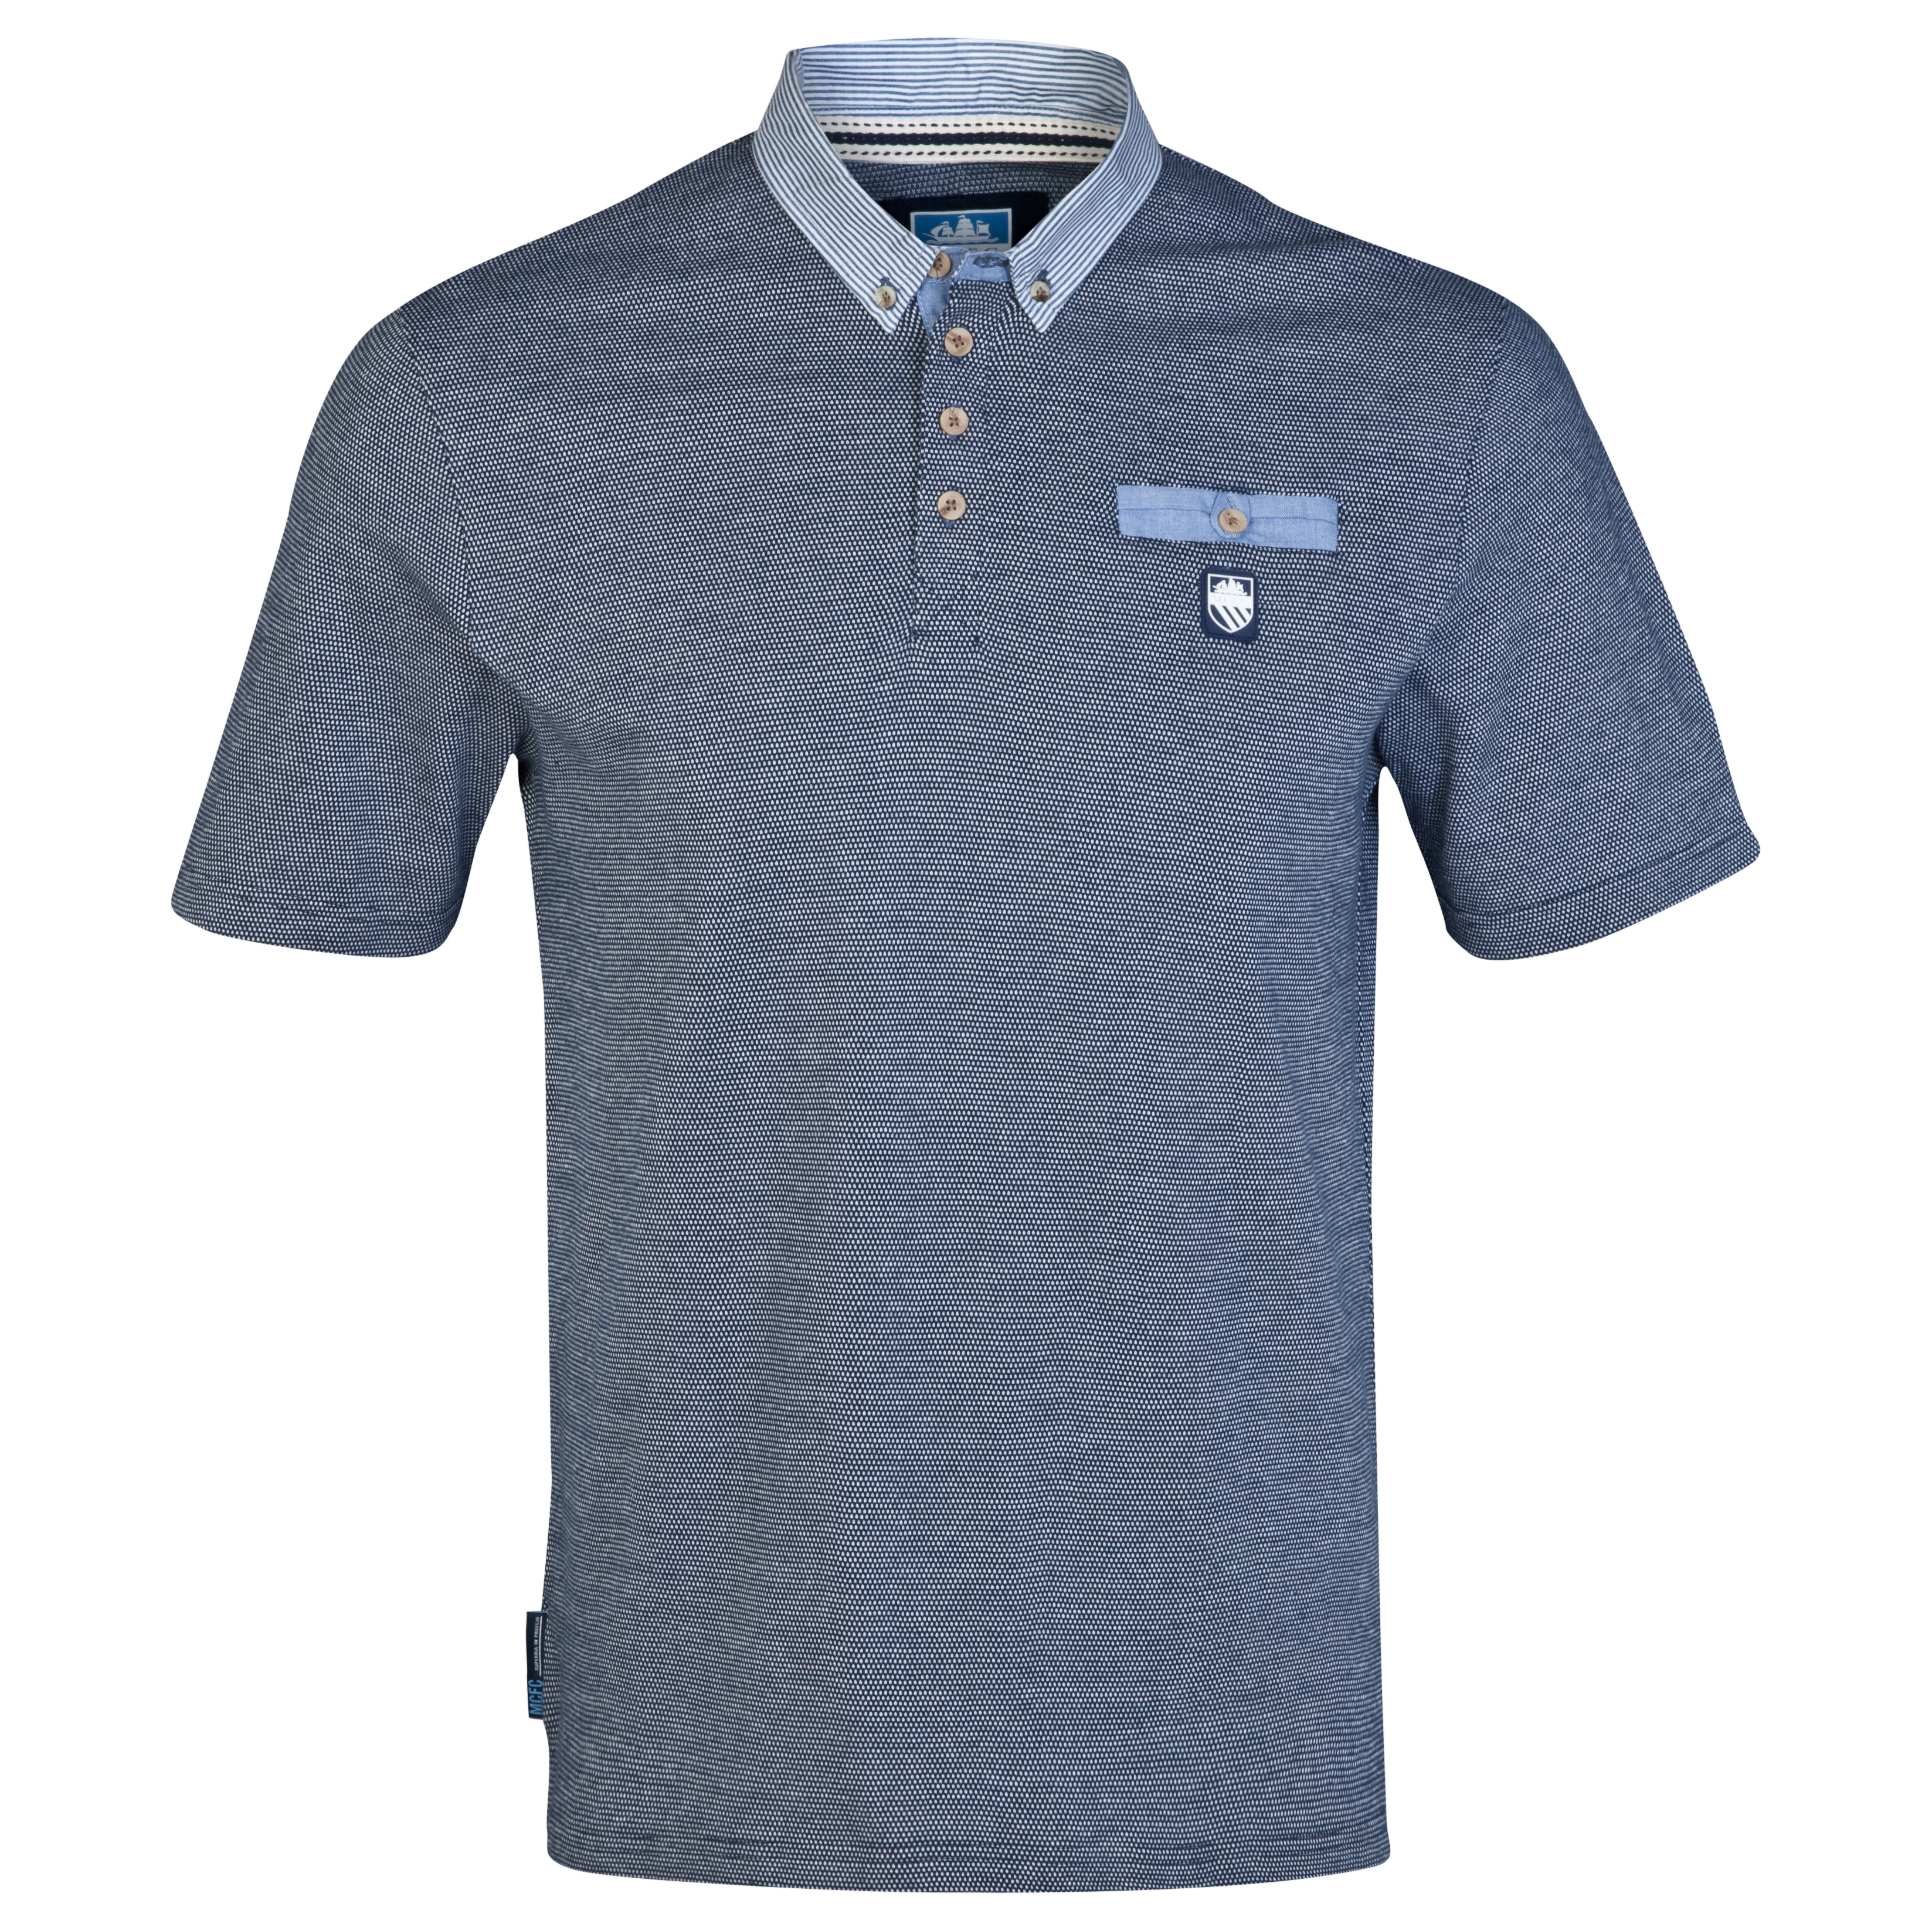 Manchester City Birdseye Polo Shirt-Mens Navy